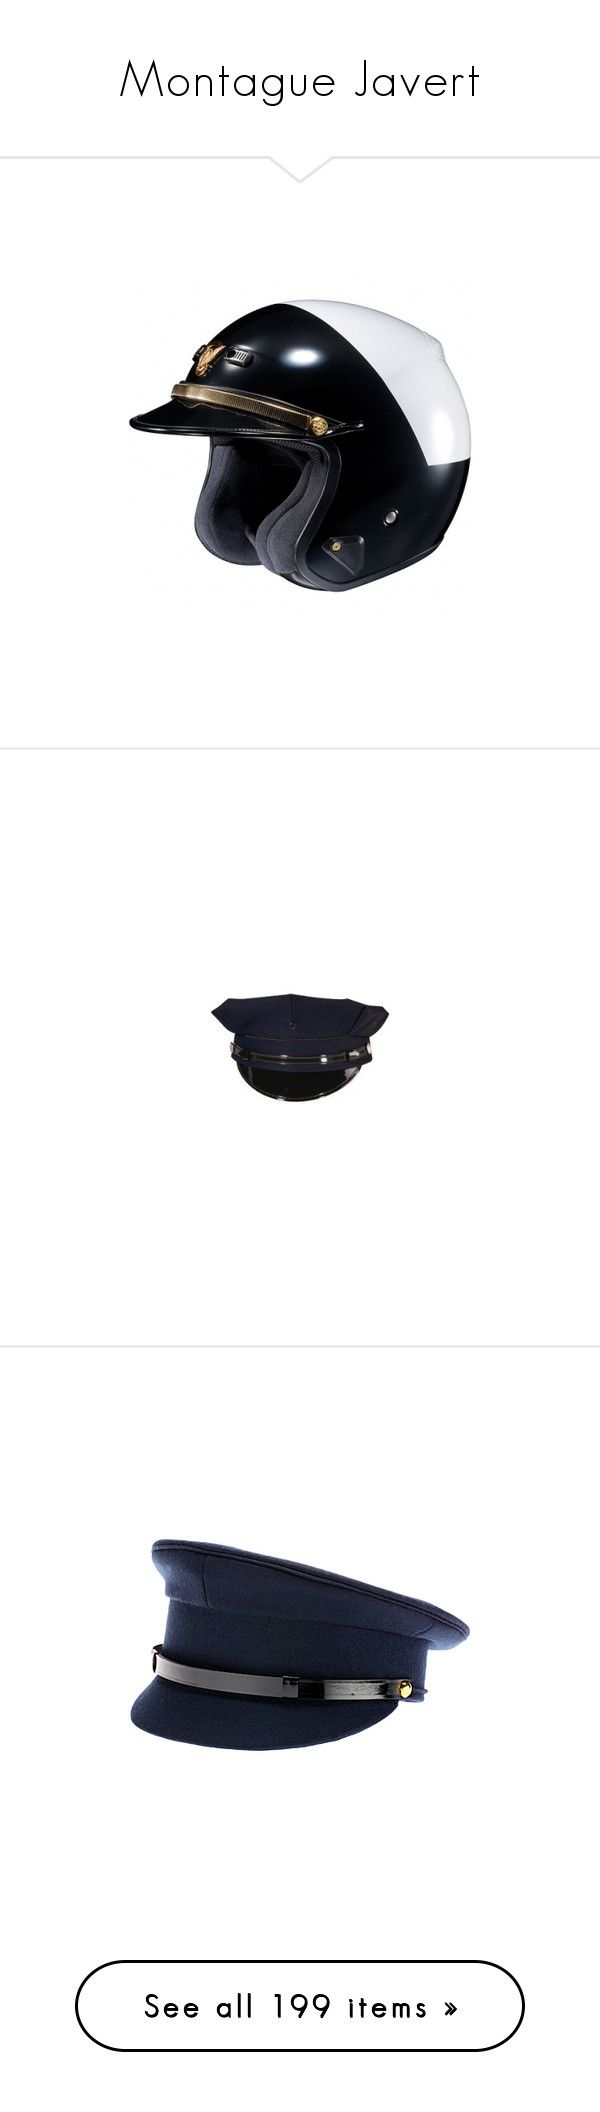 """Montague Javert"" by natmartinezcr ❤ liked on Polyvore featuring accessories, hats, black, men's accessories hats, canada goose hat, visor hats, canada goose, ear flap hats, earflap hat and navy hat"